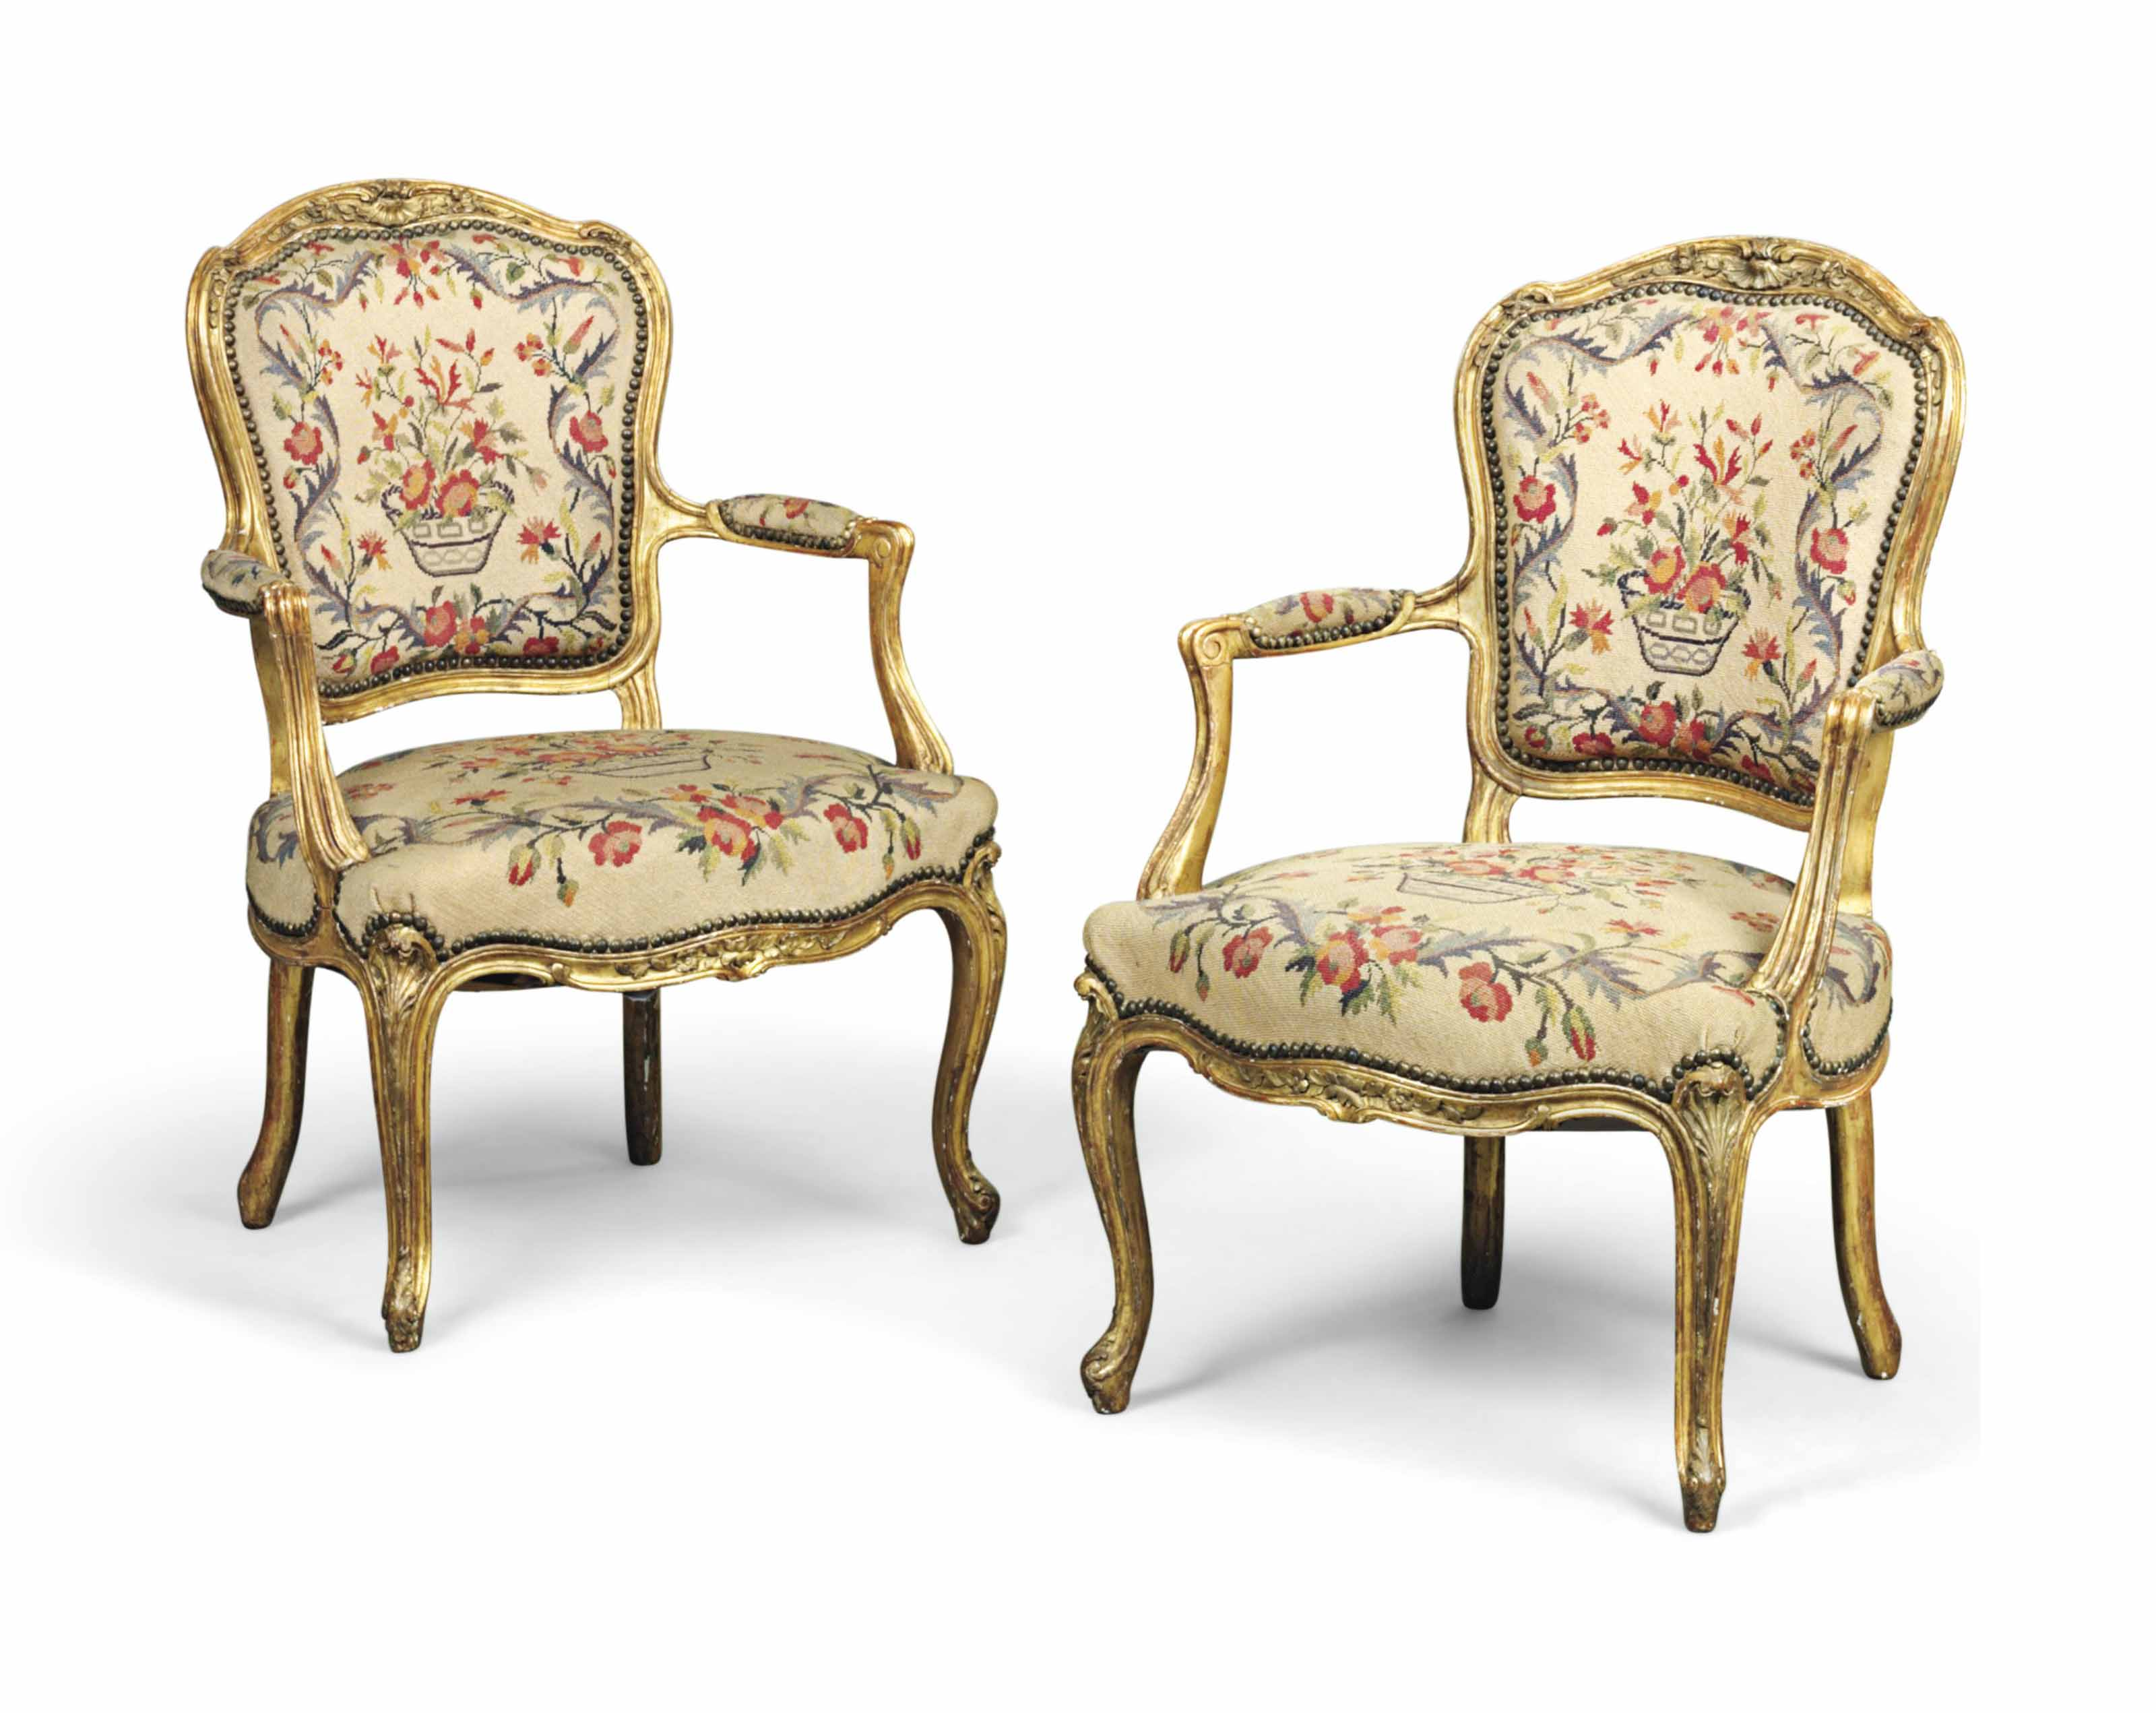 40 Fauteuils A Pair Of French Giltwood Fauteuils Of Louis Xv Style 19th